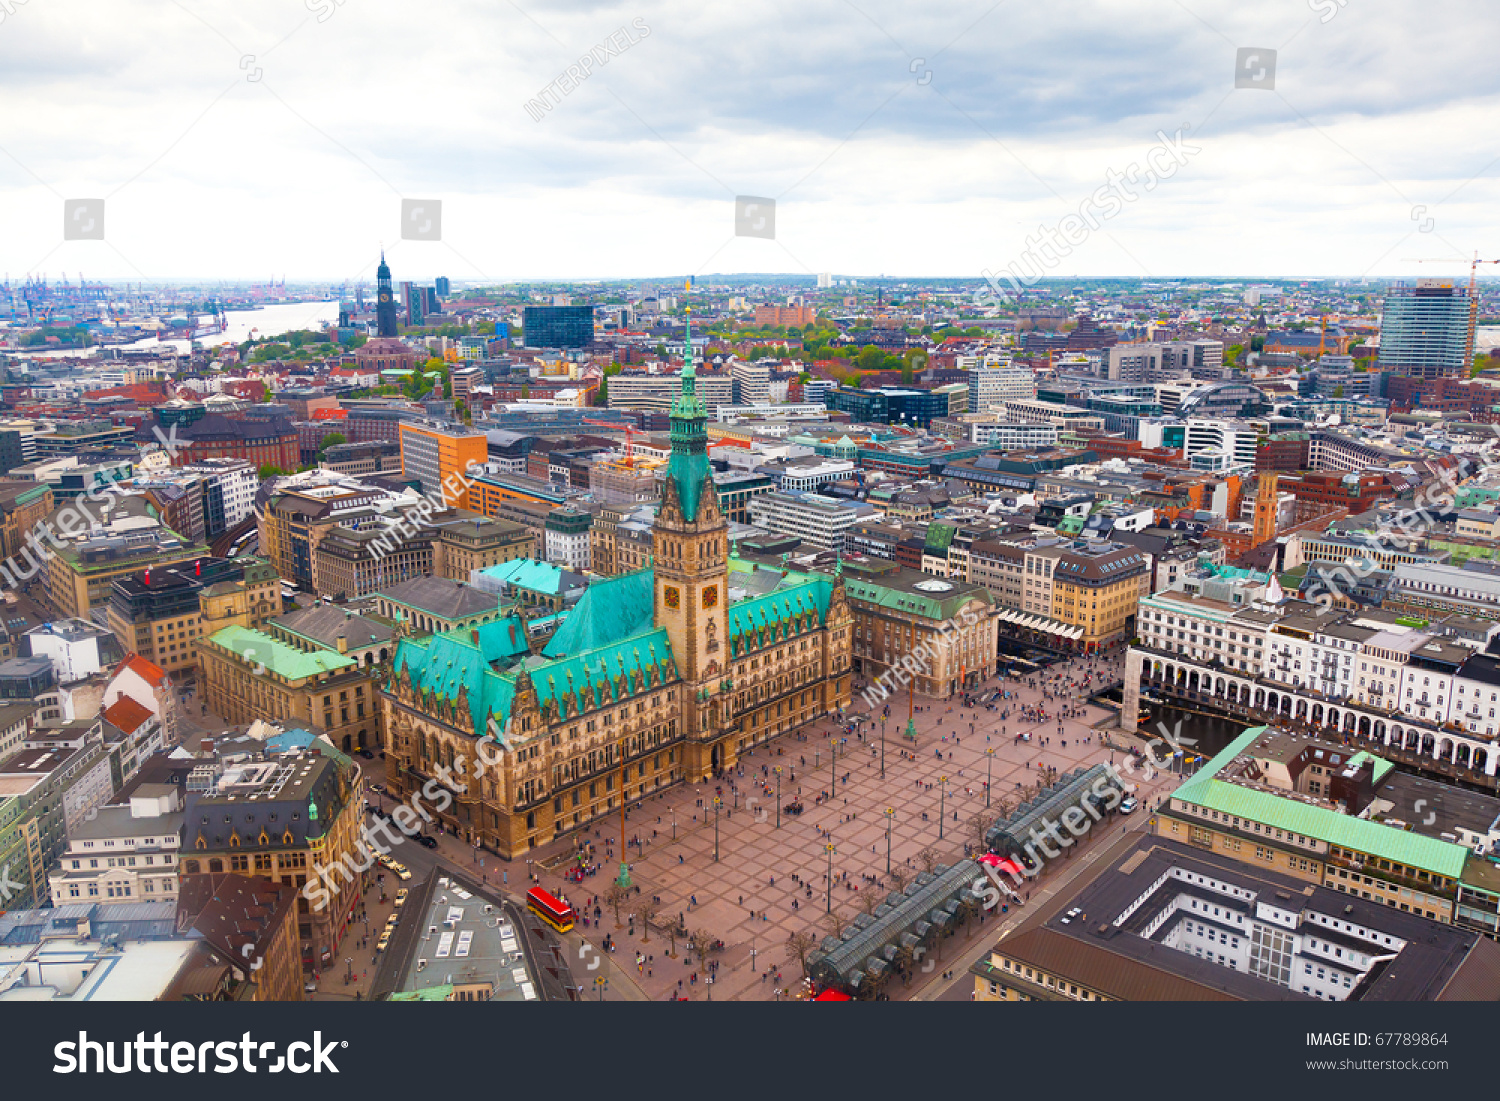 panorama of downtown hamburg germany stock photo 67789864 shutterstock. Black Bedroom Furniture Sets. Home Design Ideas